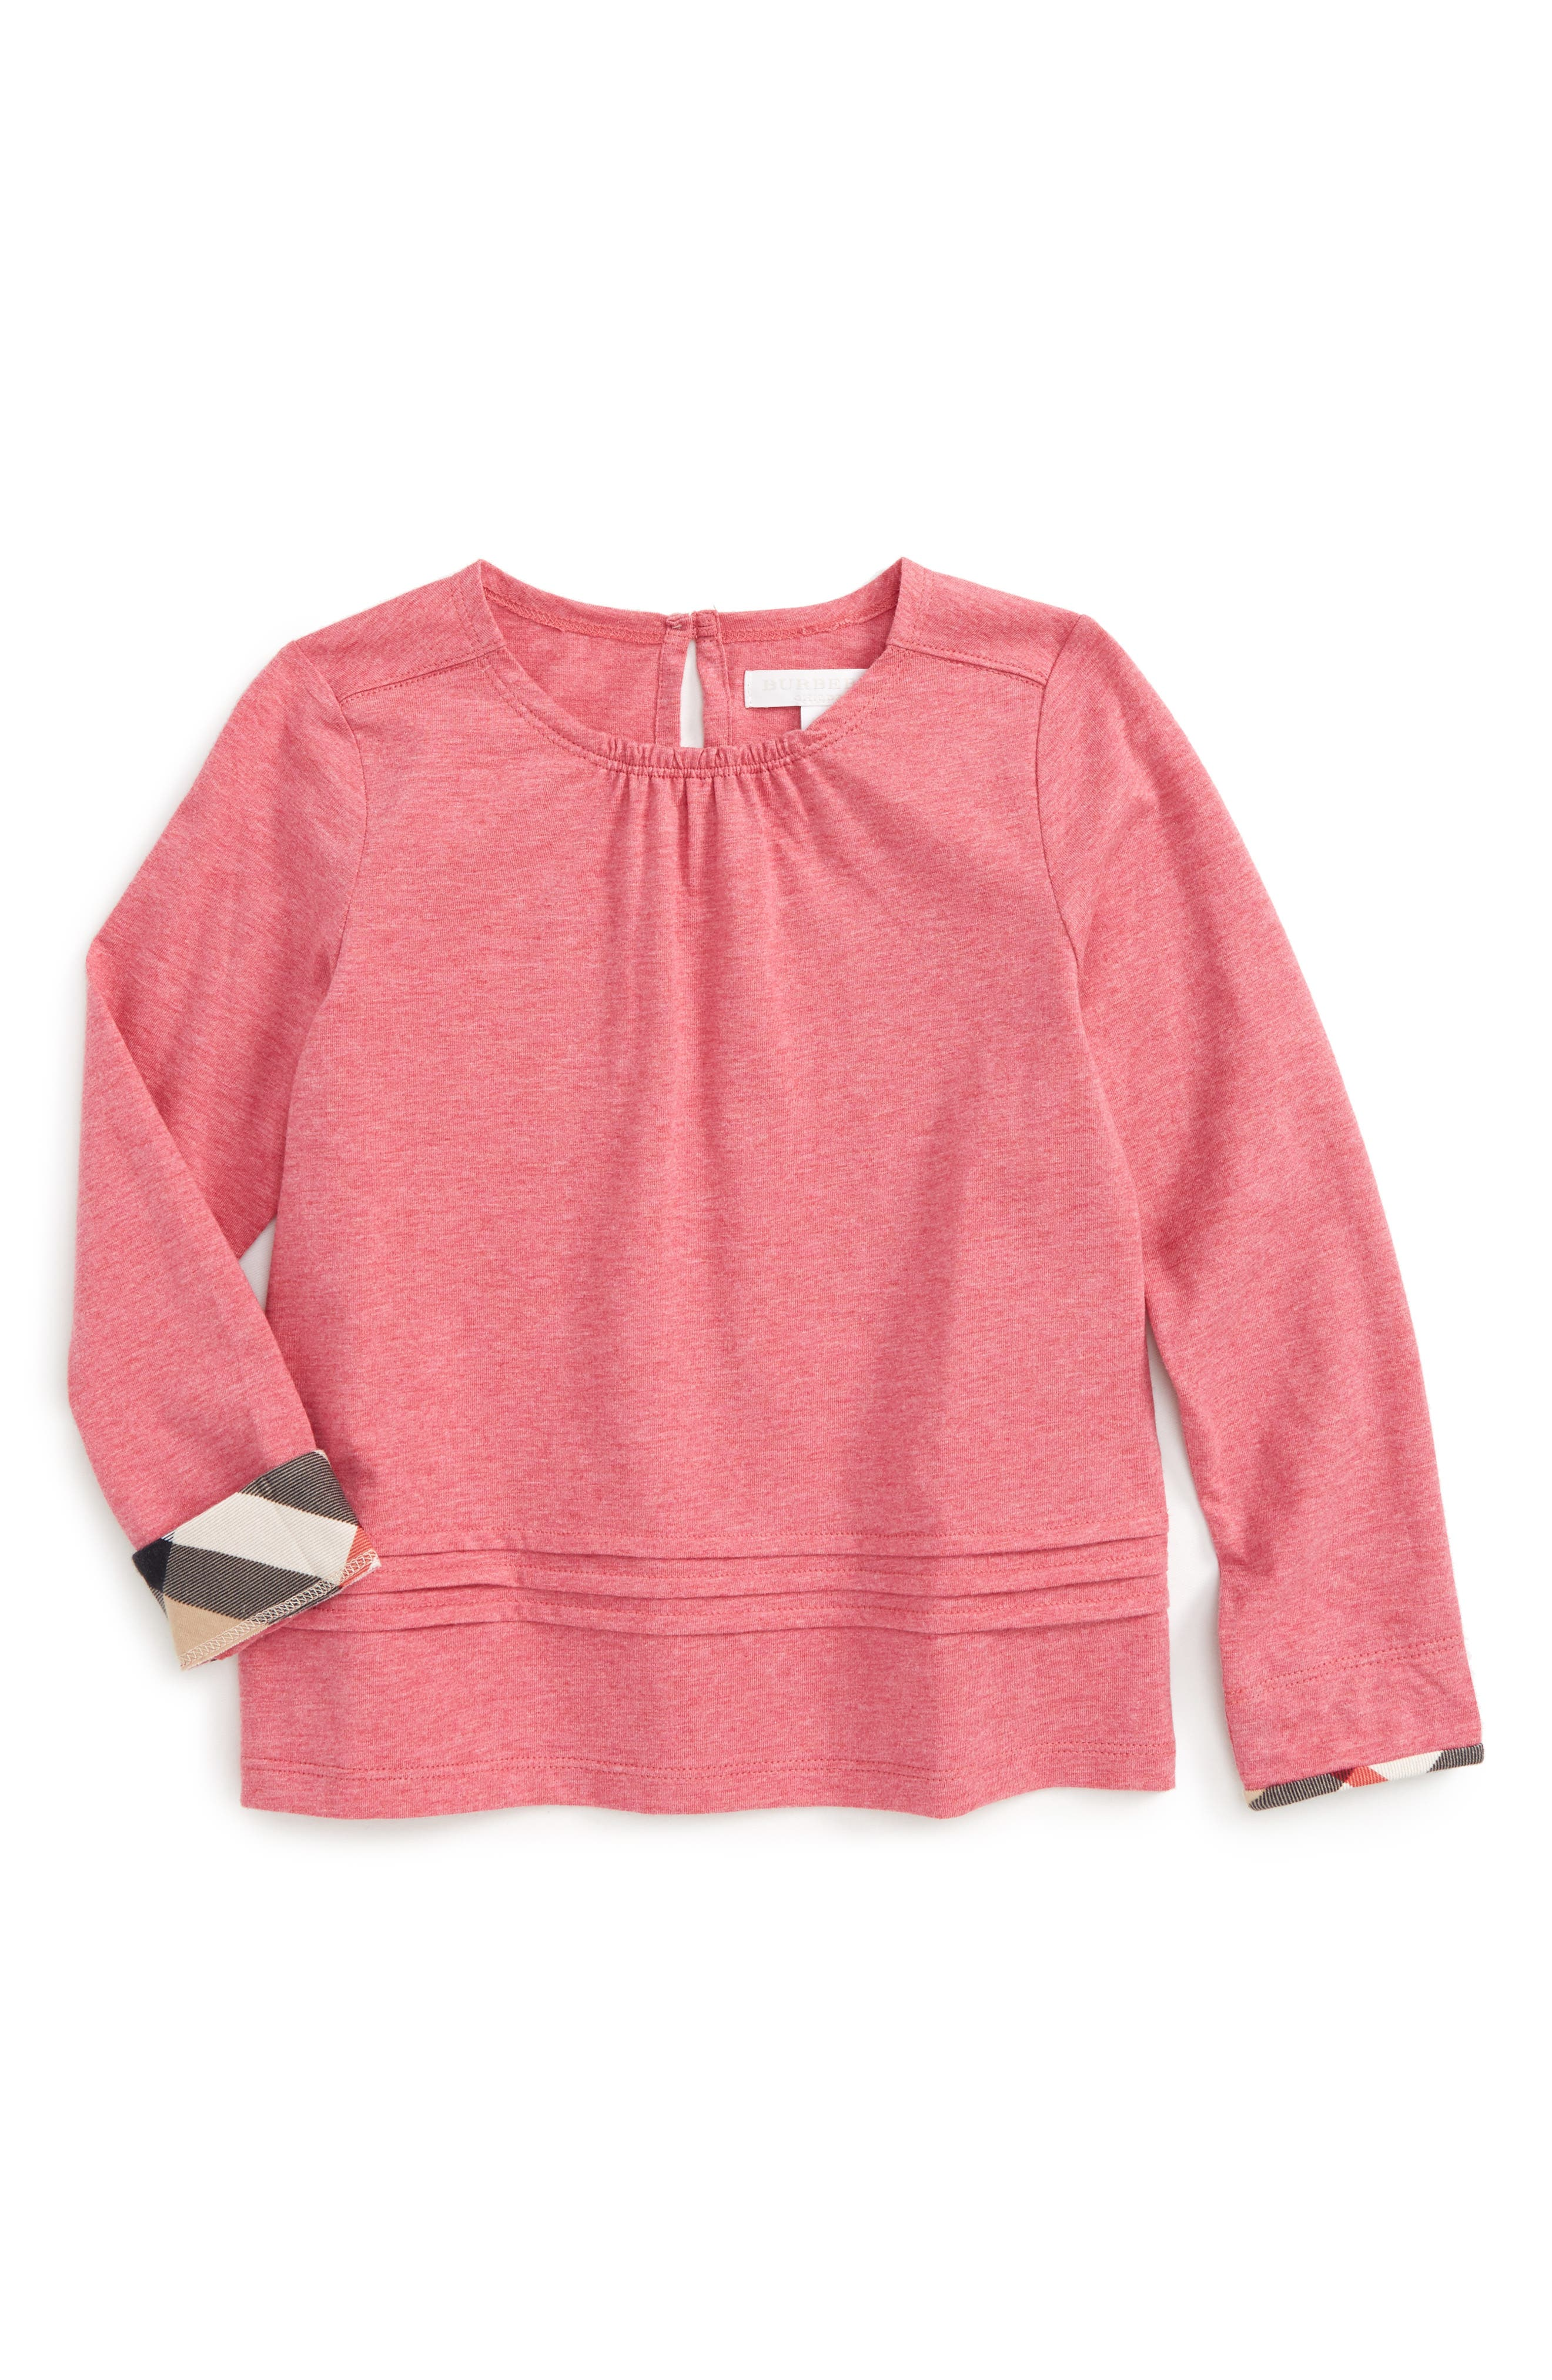 Burberry Gisselle Cotton Top (Baby Girls)